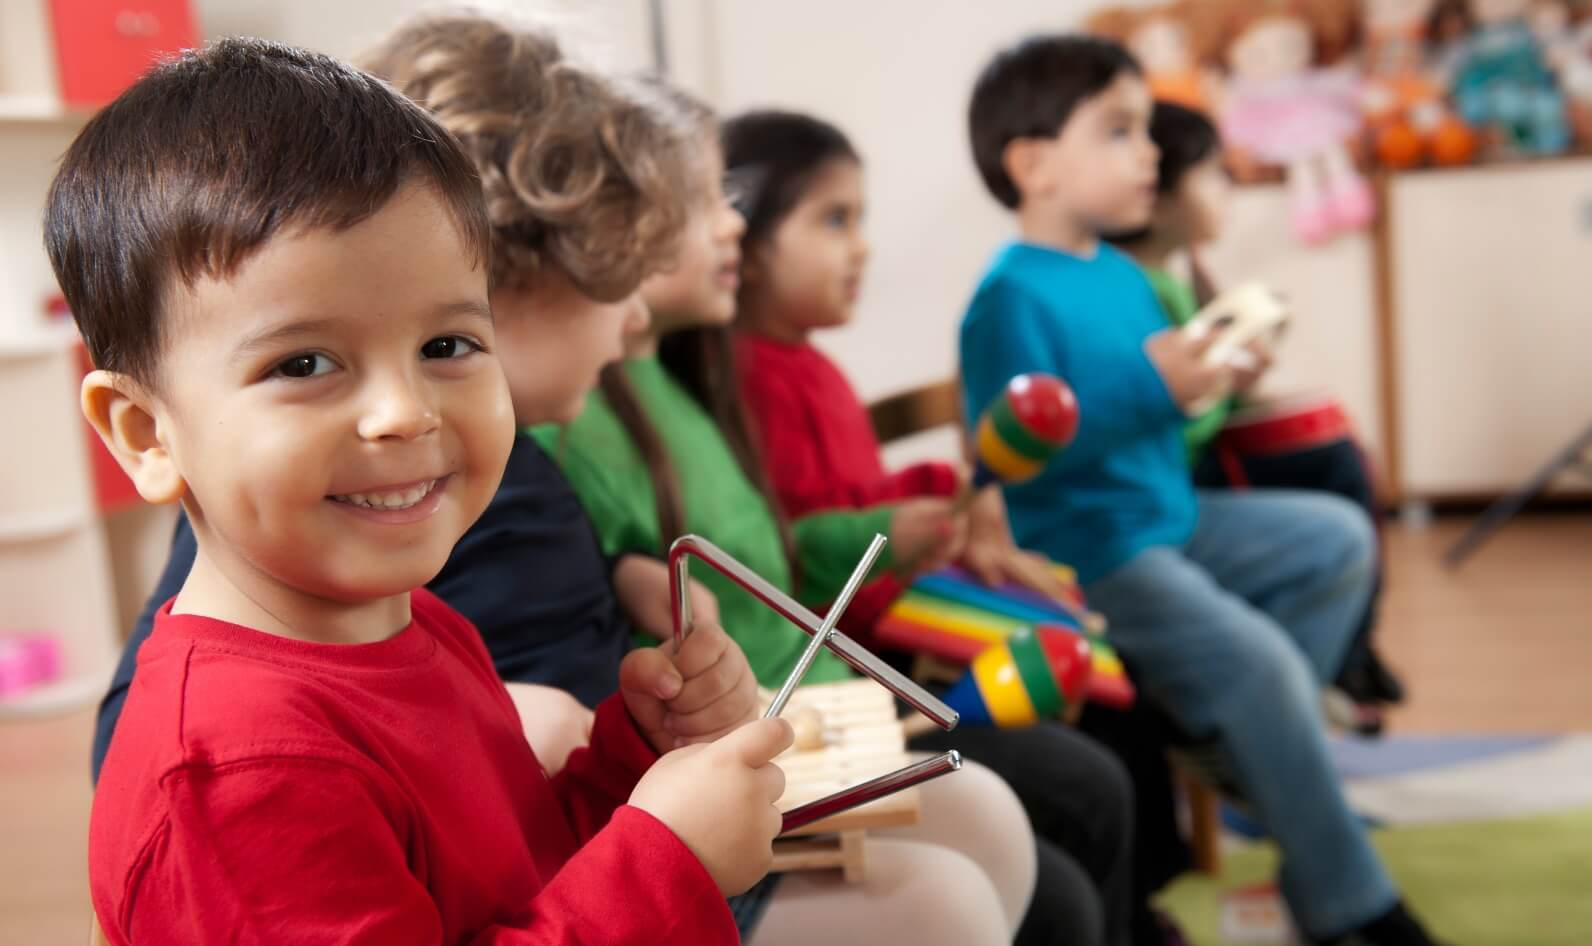 5 Reasons Why Daycare Centers Are So Important for Parents